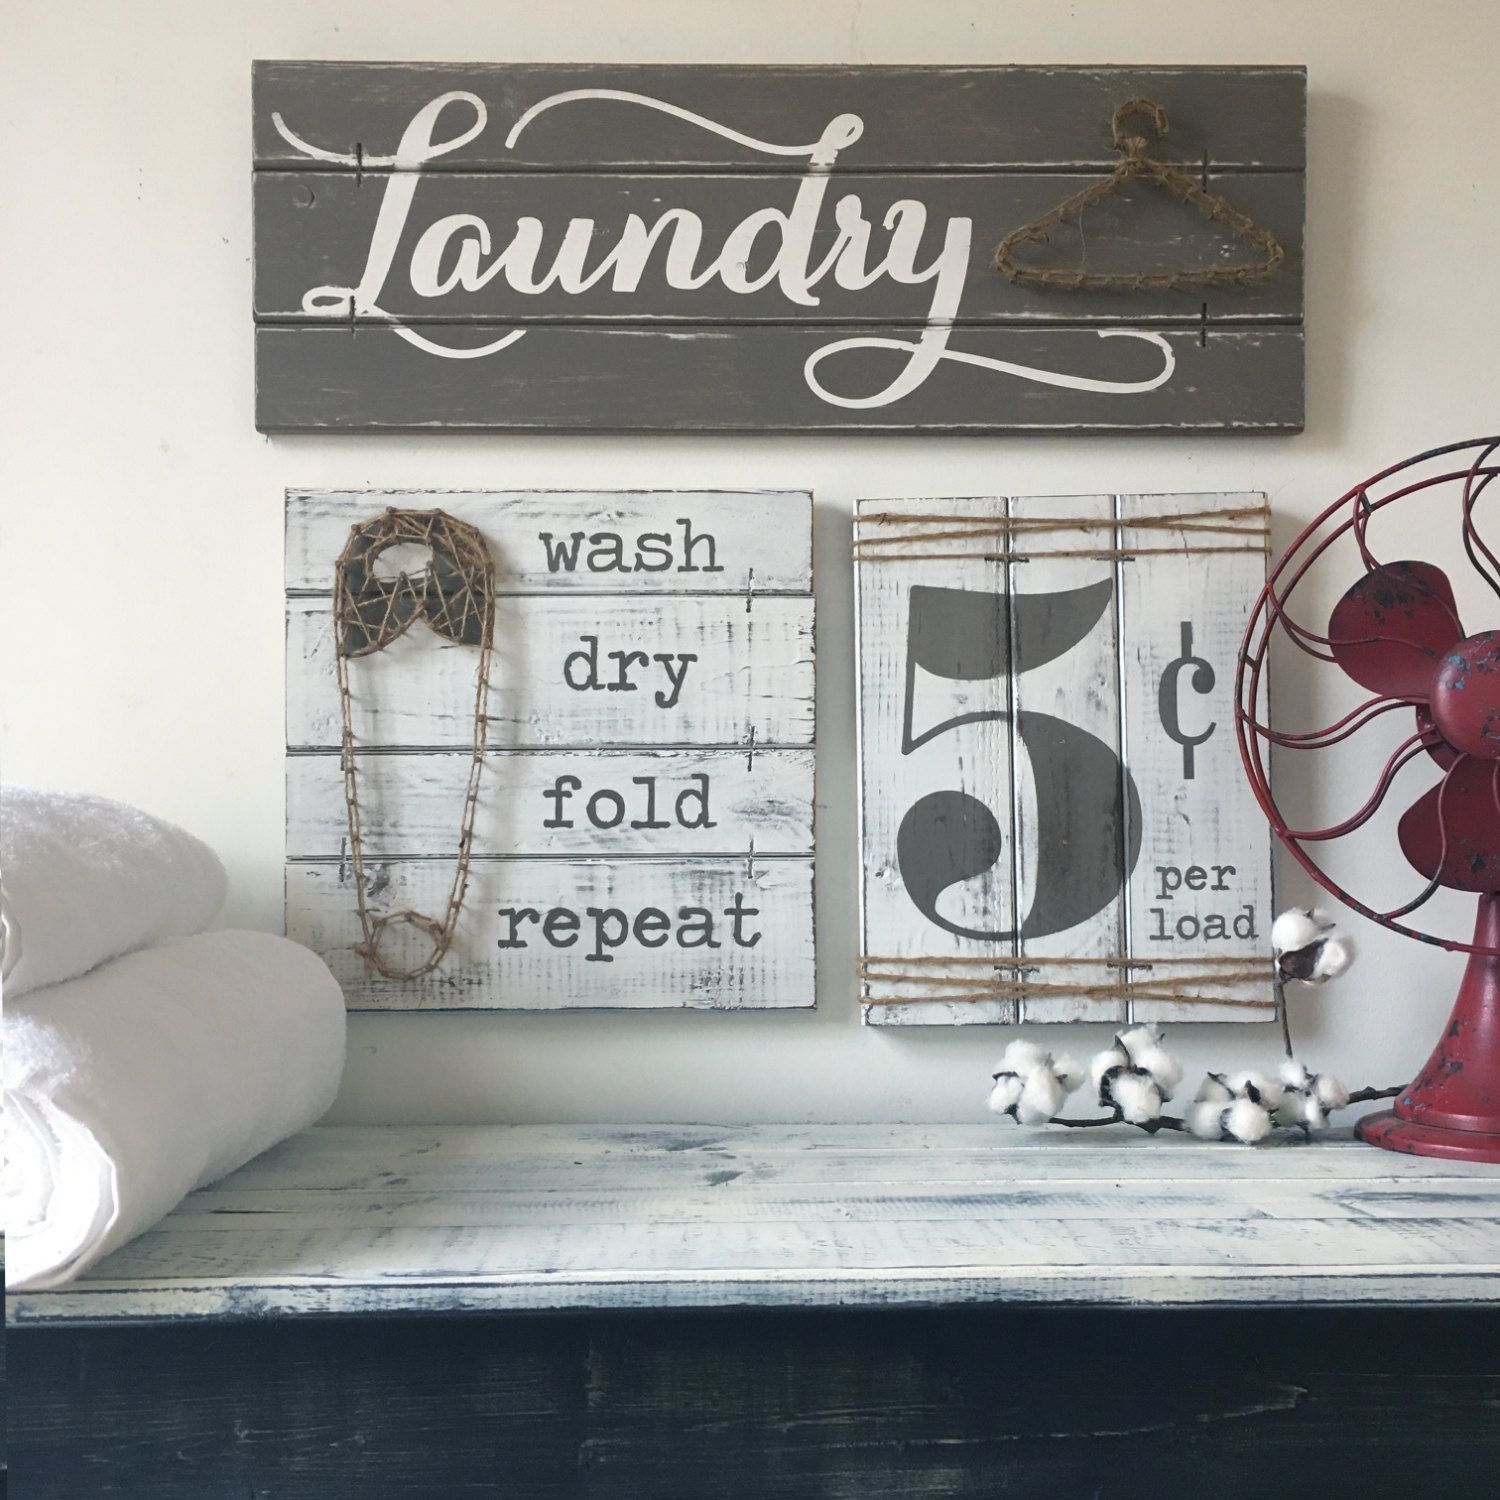 Laundry Room Wooden Signs Laundry Sign Set Laundry Room Decor Laundry Room Decor Signs